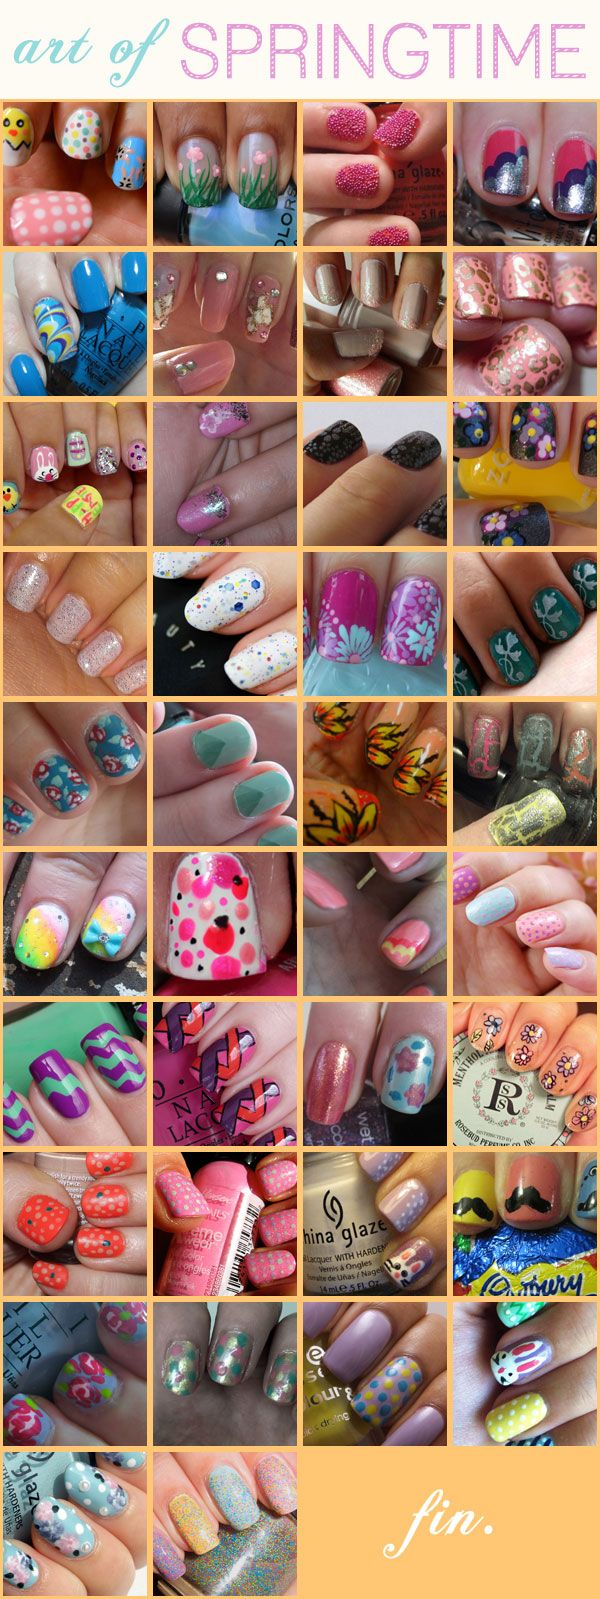 38 different spring-themed nail designs!  My pastel leopard nails made it as one of Temptalia's picks - what an honor!